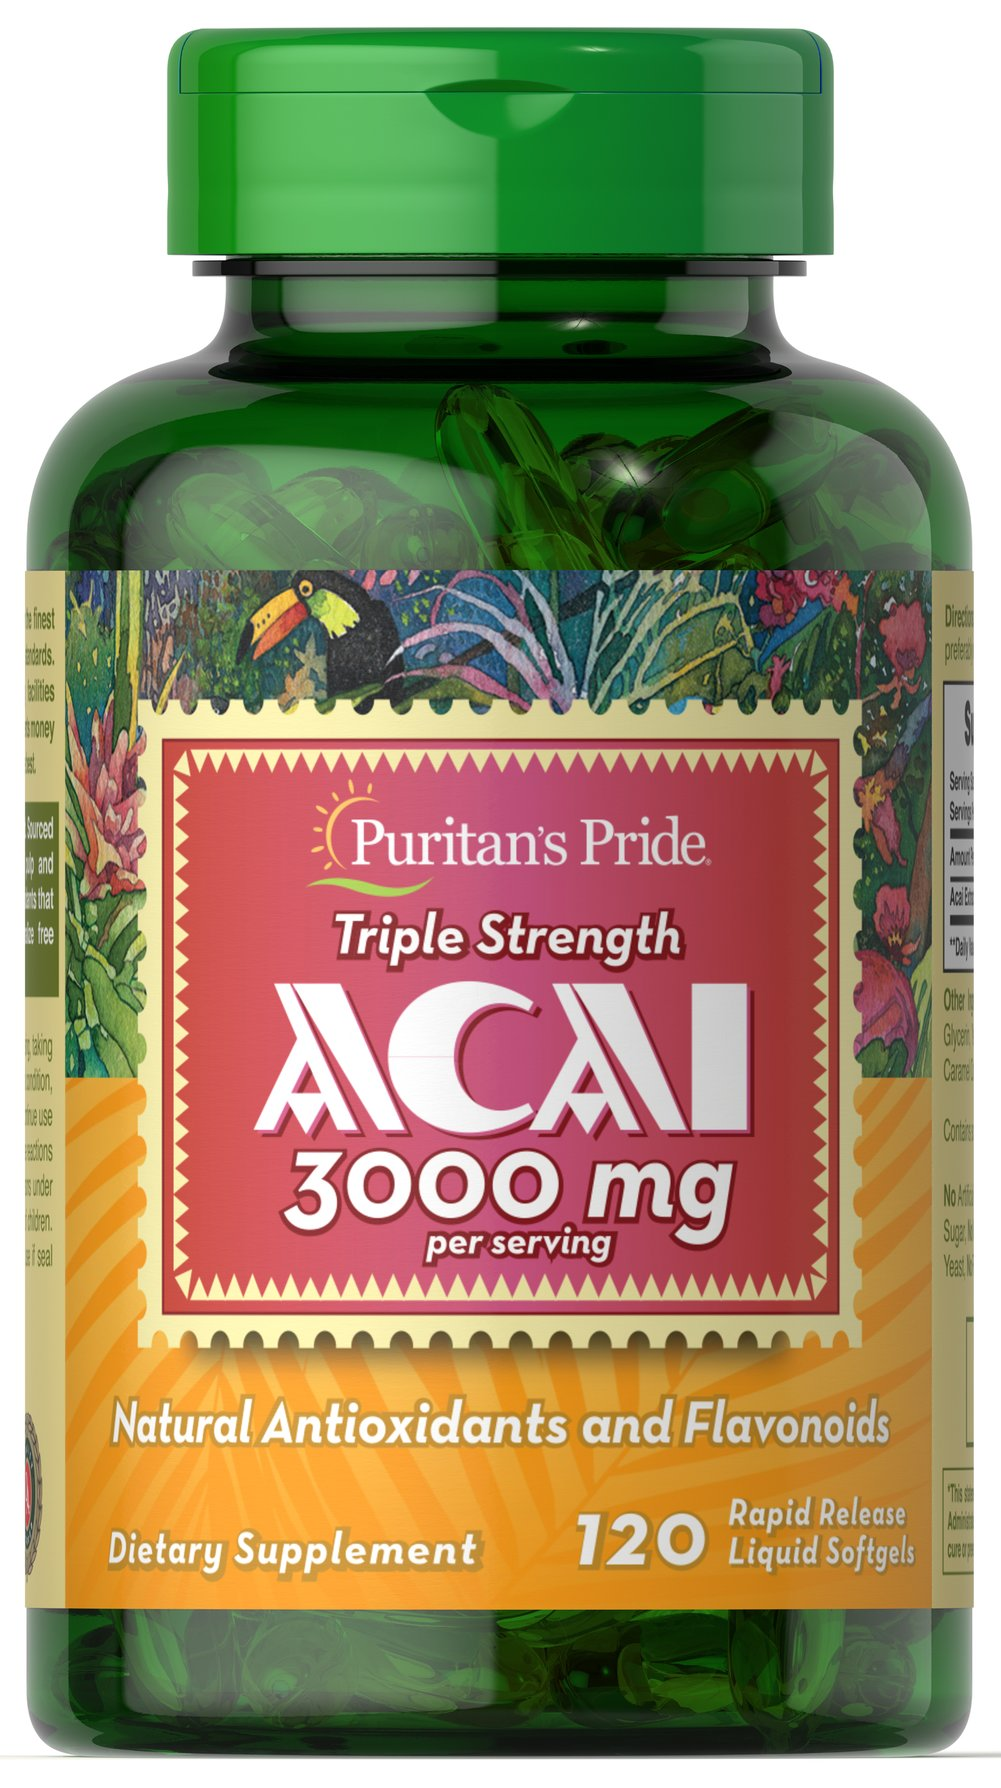 Triple Strength Acai 3000 mg <p>Unlock an exotic fountain of health and vitality with Acai!**</p><p>Contains natural flavonoids and antioxidants that help protect the body from cell damaging free radicals**</p><p>Antioxidants are an important line of defense against these rogue atoms and also help support and maintain immune system health**</p><p>3,000 mg Acai per serving (two softgels).</p> 120 Softgels 3000 mg $15.28